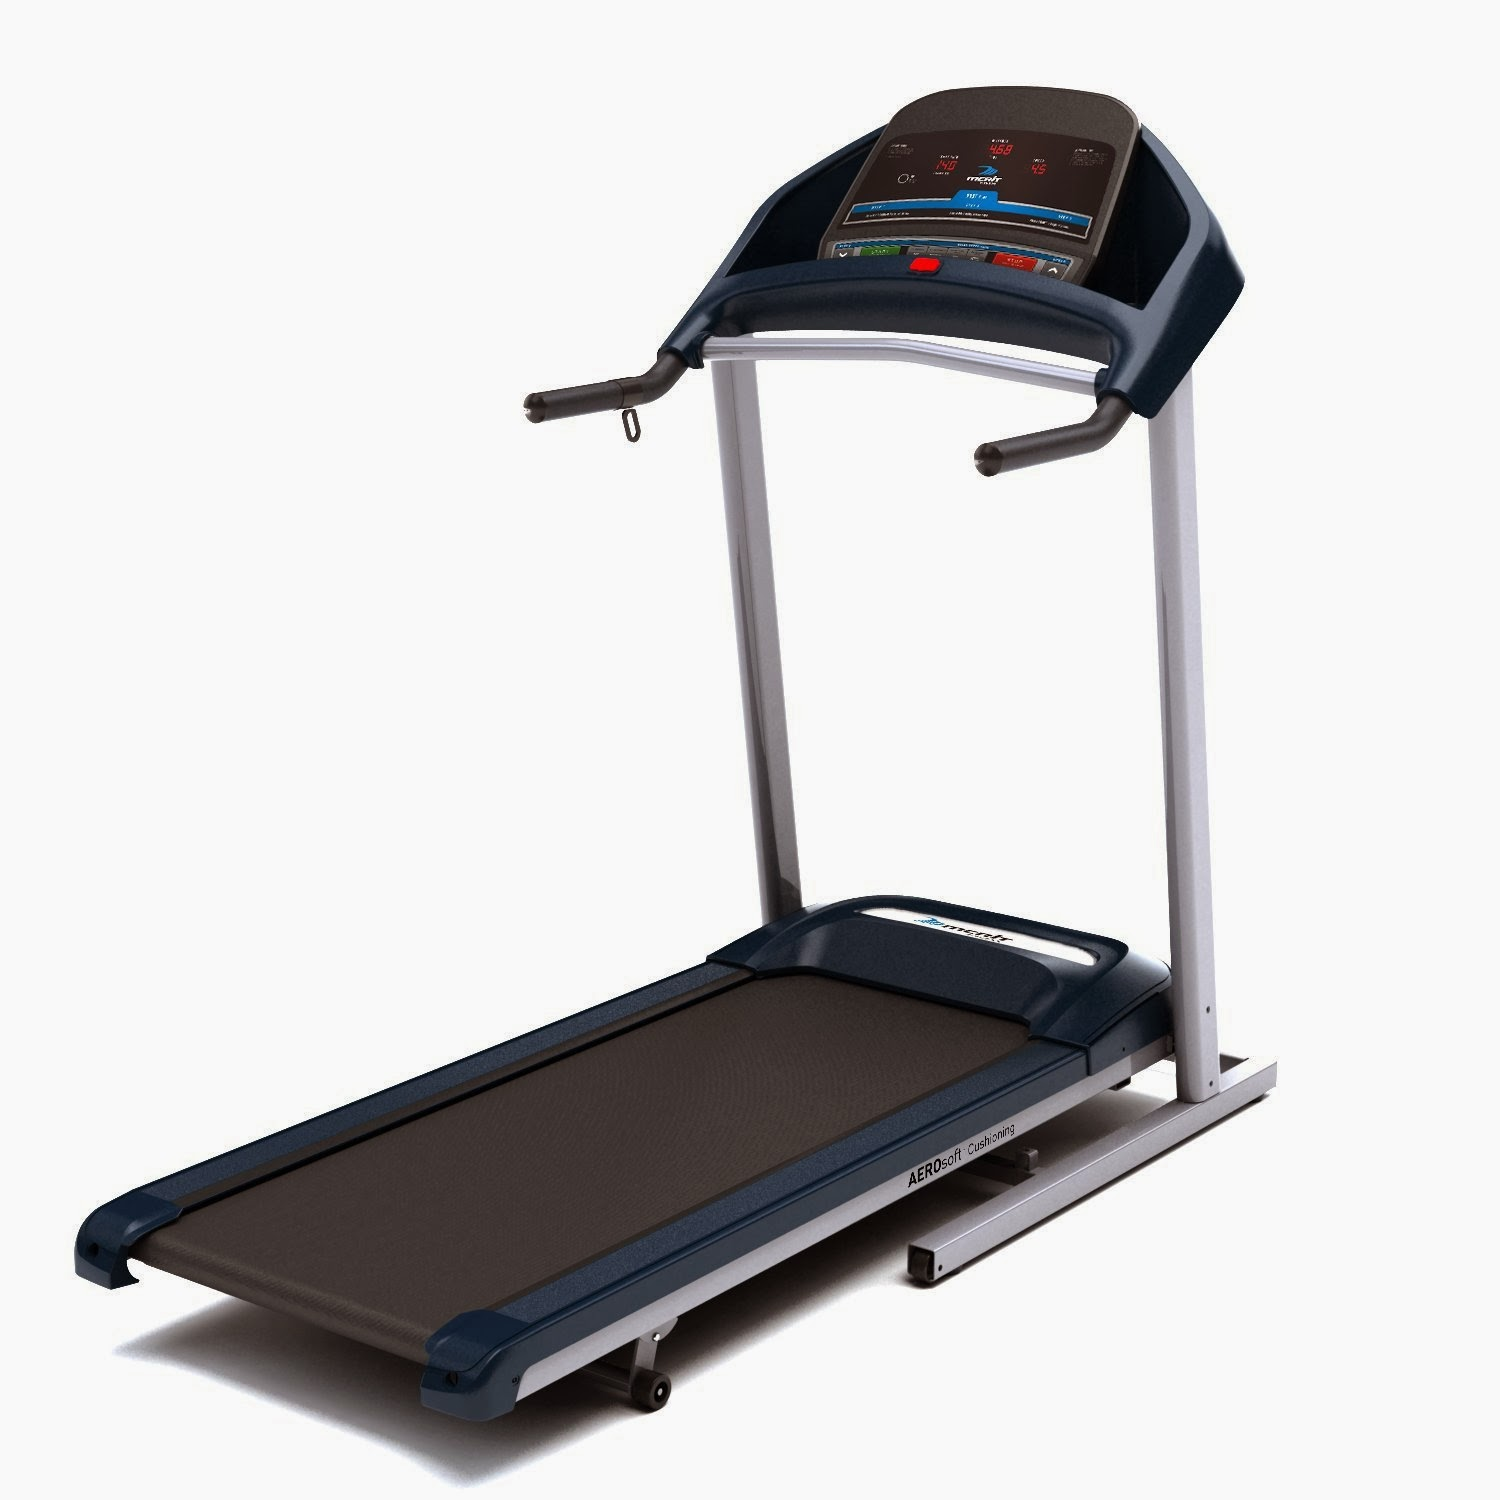 Merit Fitness 715T Plus Treadmill, compare features & differences with 725T Plus Treadmill